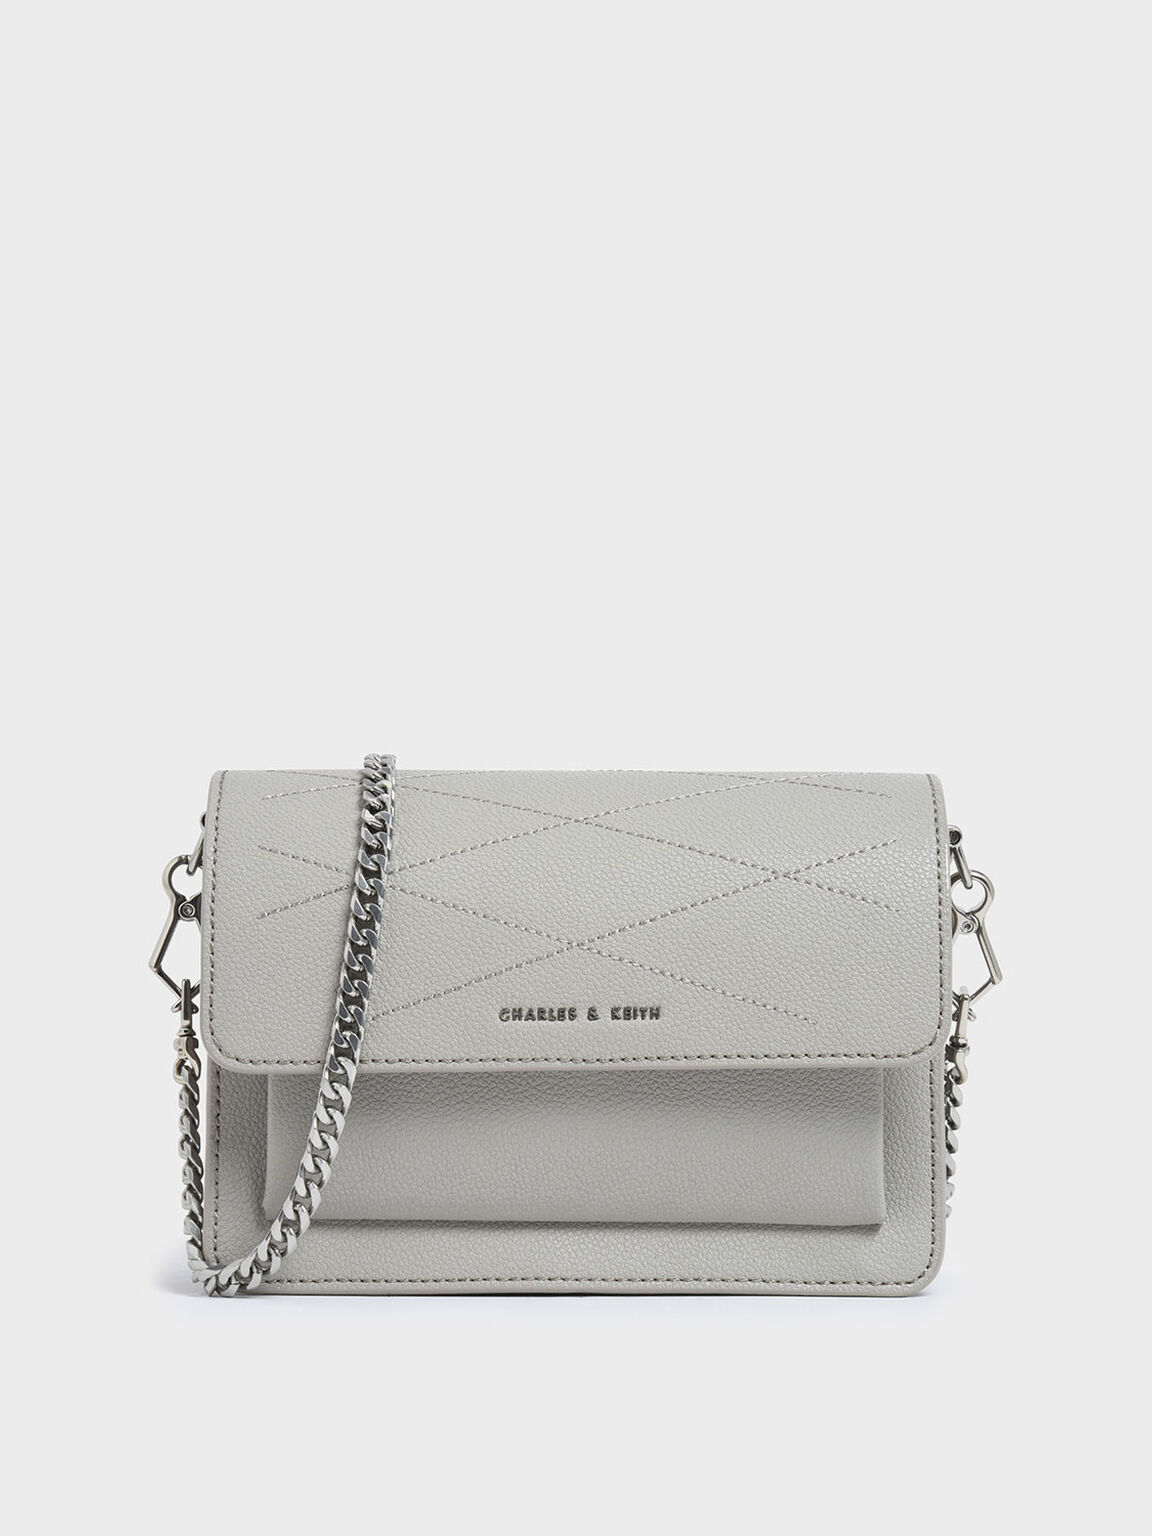 Top Stitch Detail Crossbody Bag, Grey, hi-res